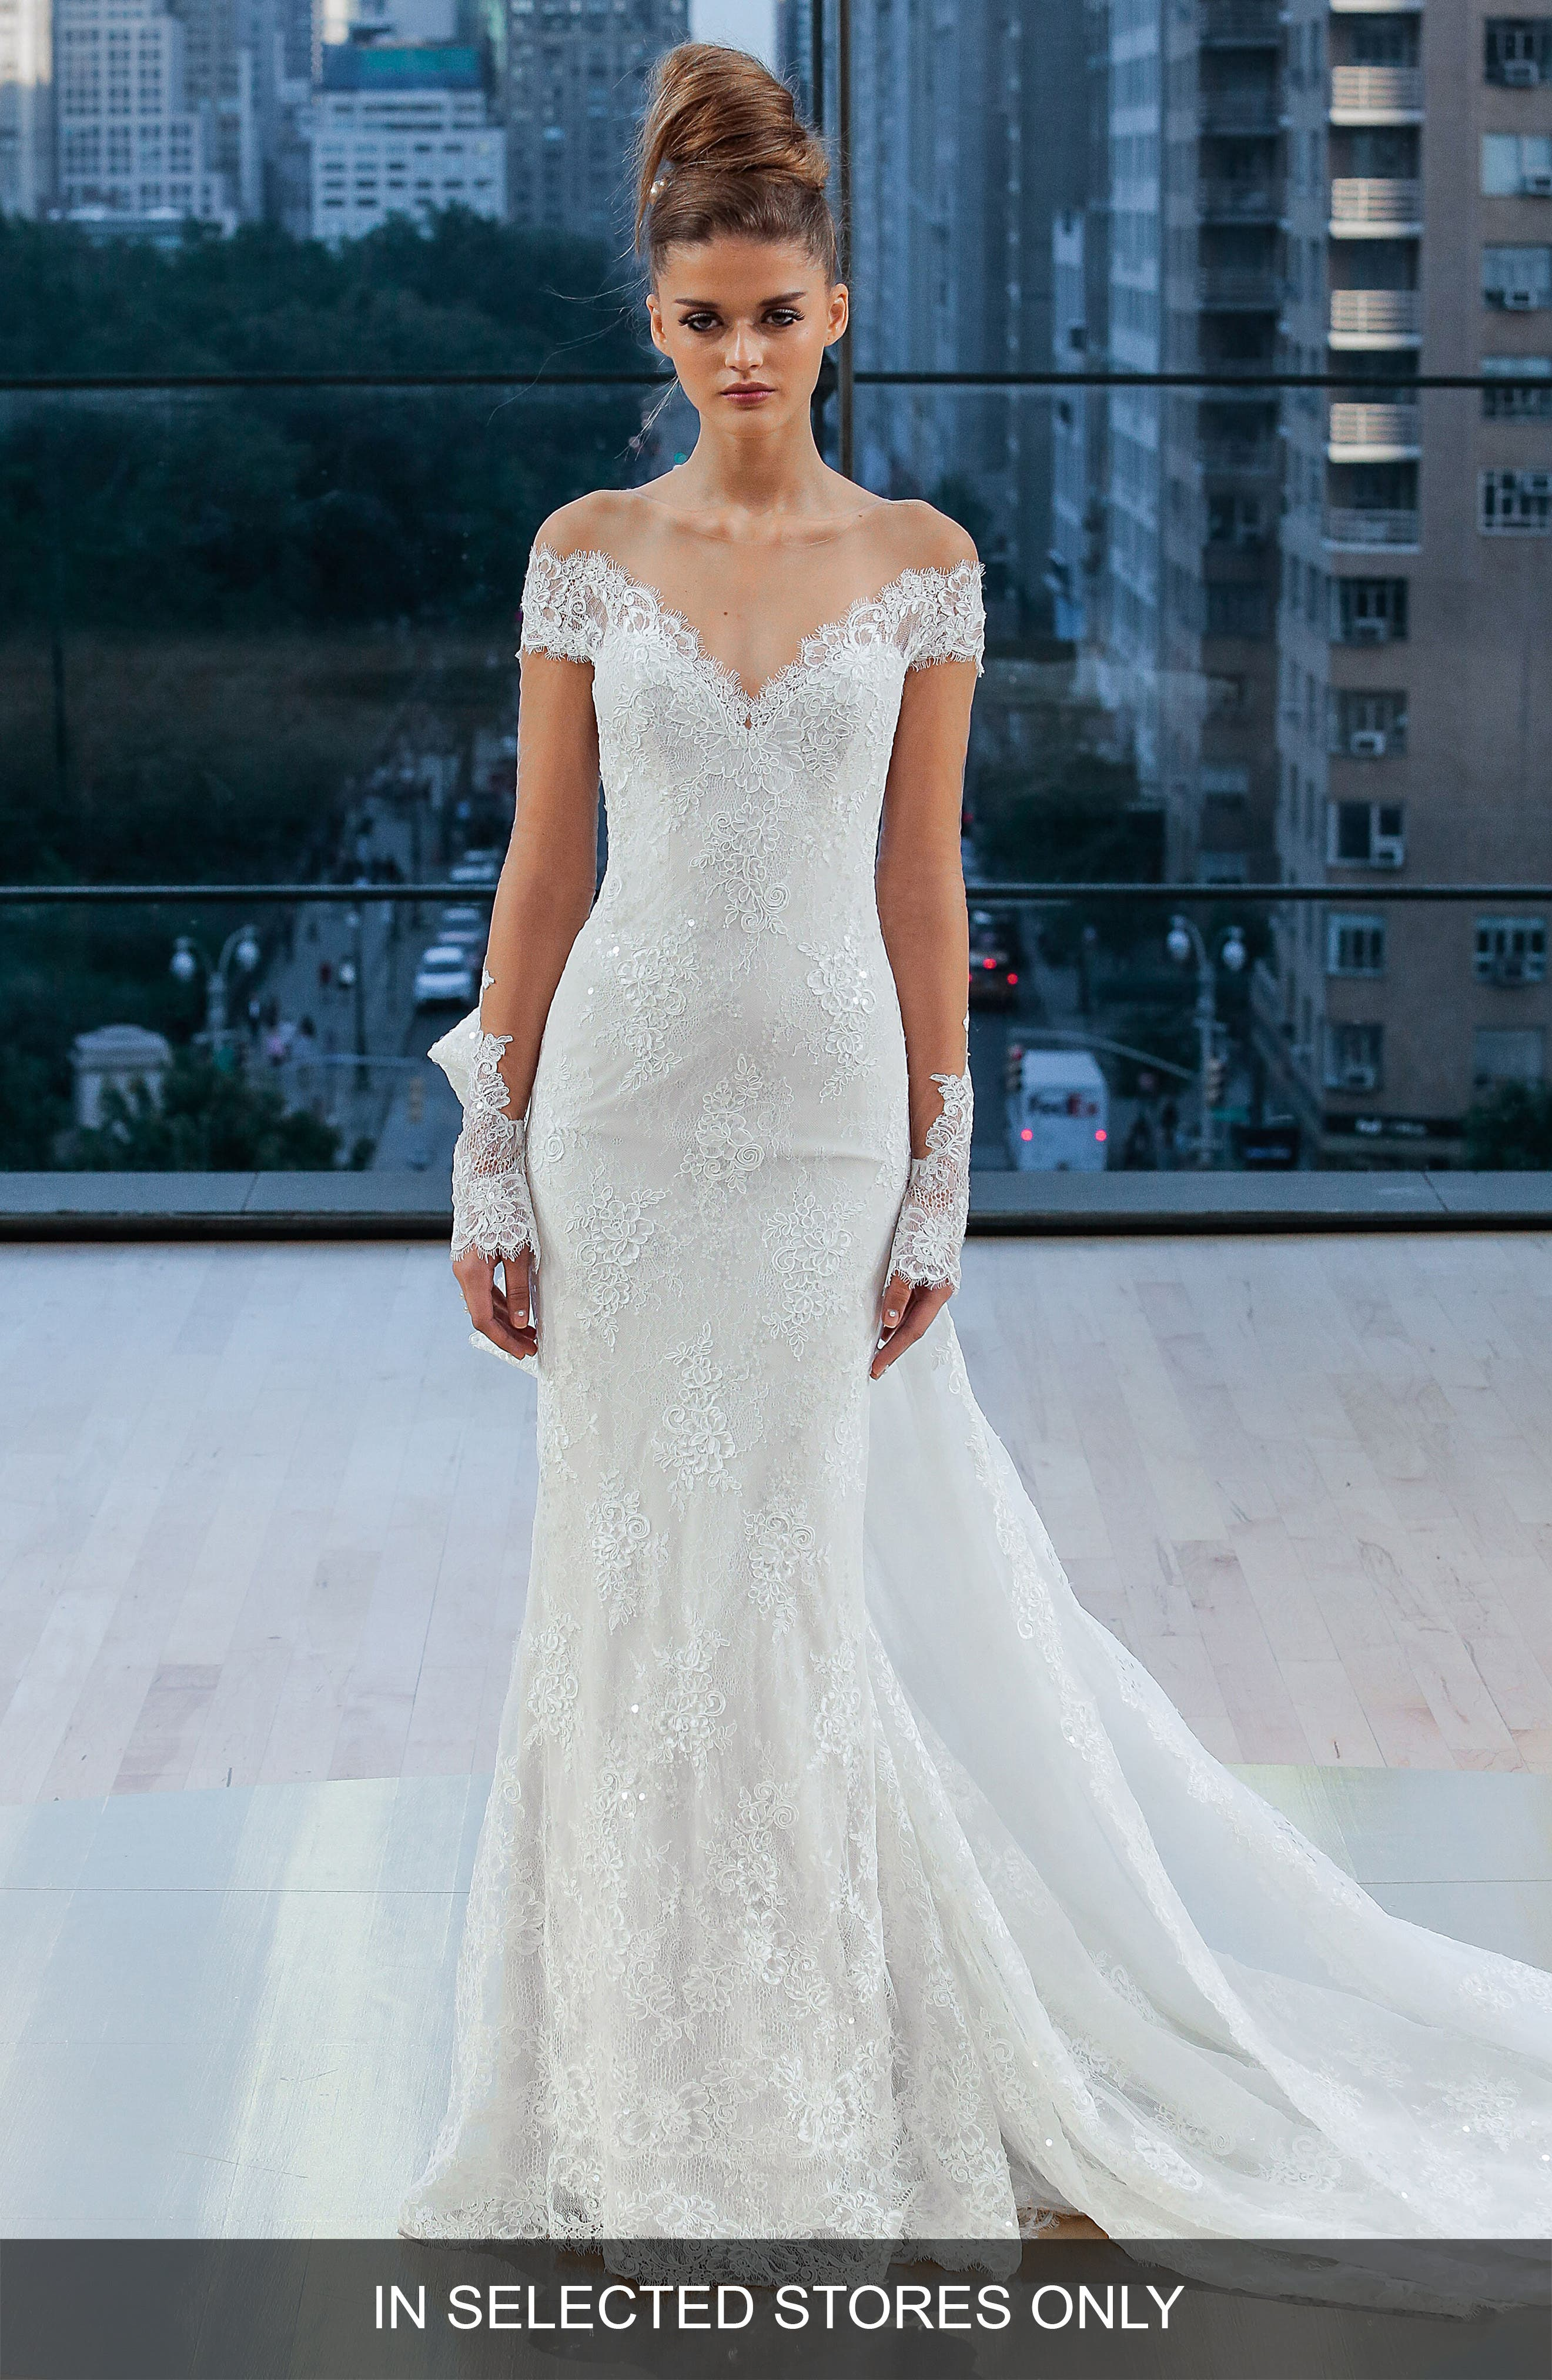 Alternate Image 1 Selected - Ines di Santo Gramercy Off the Shoulder Silk Lace Sheath Gown